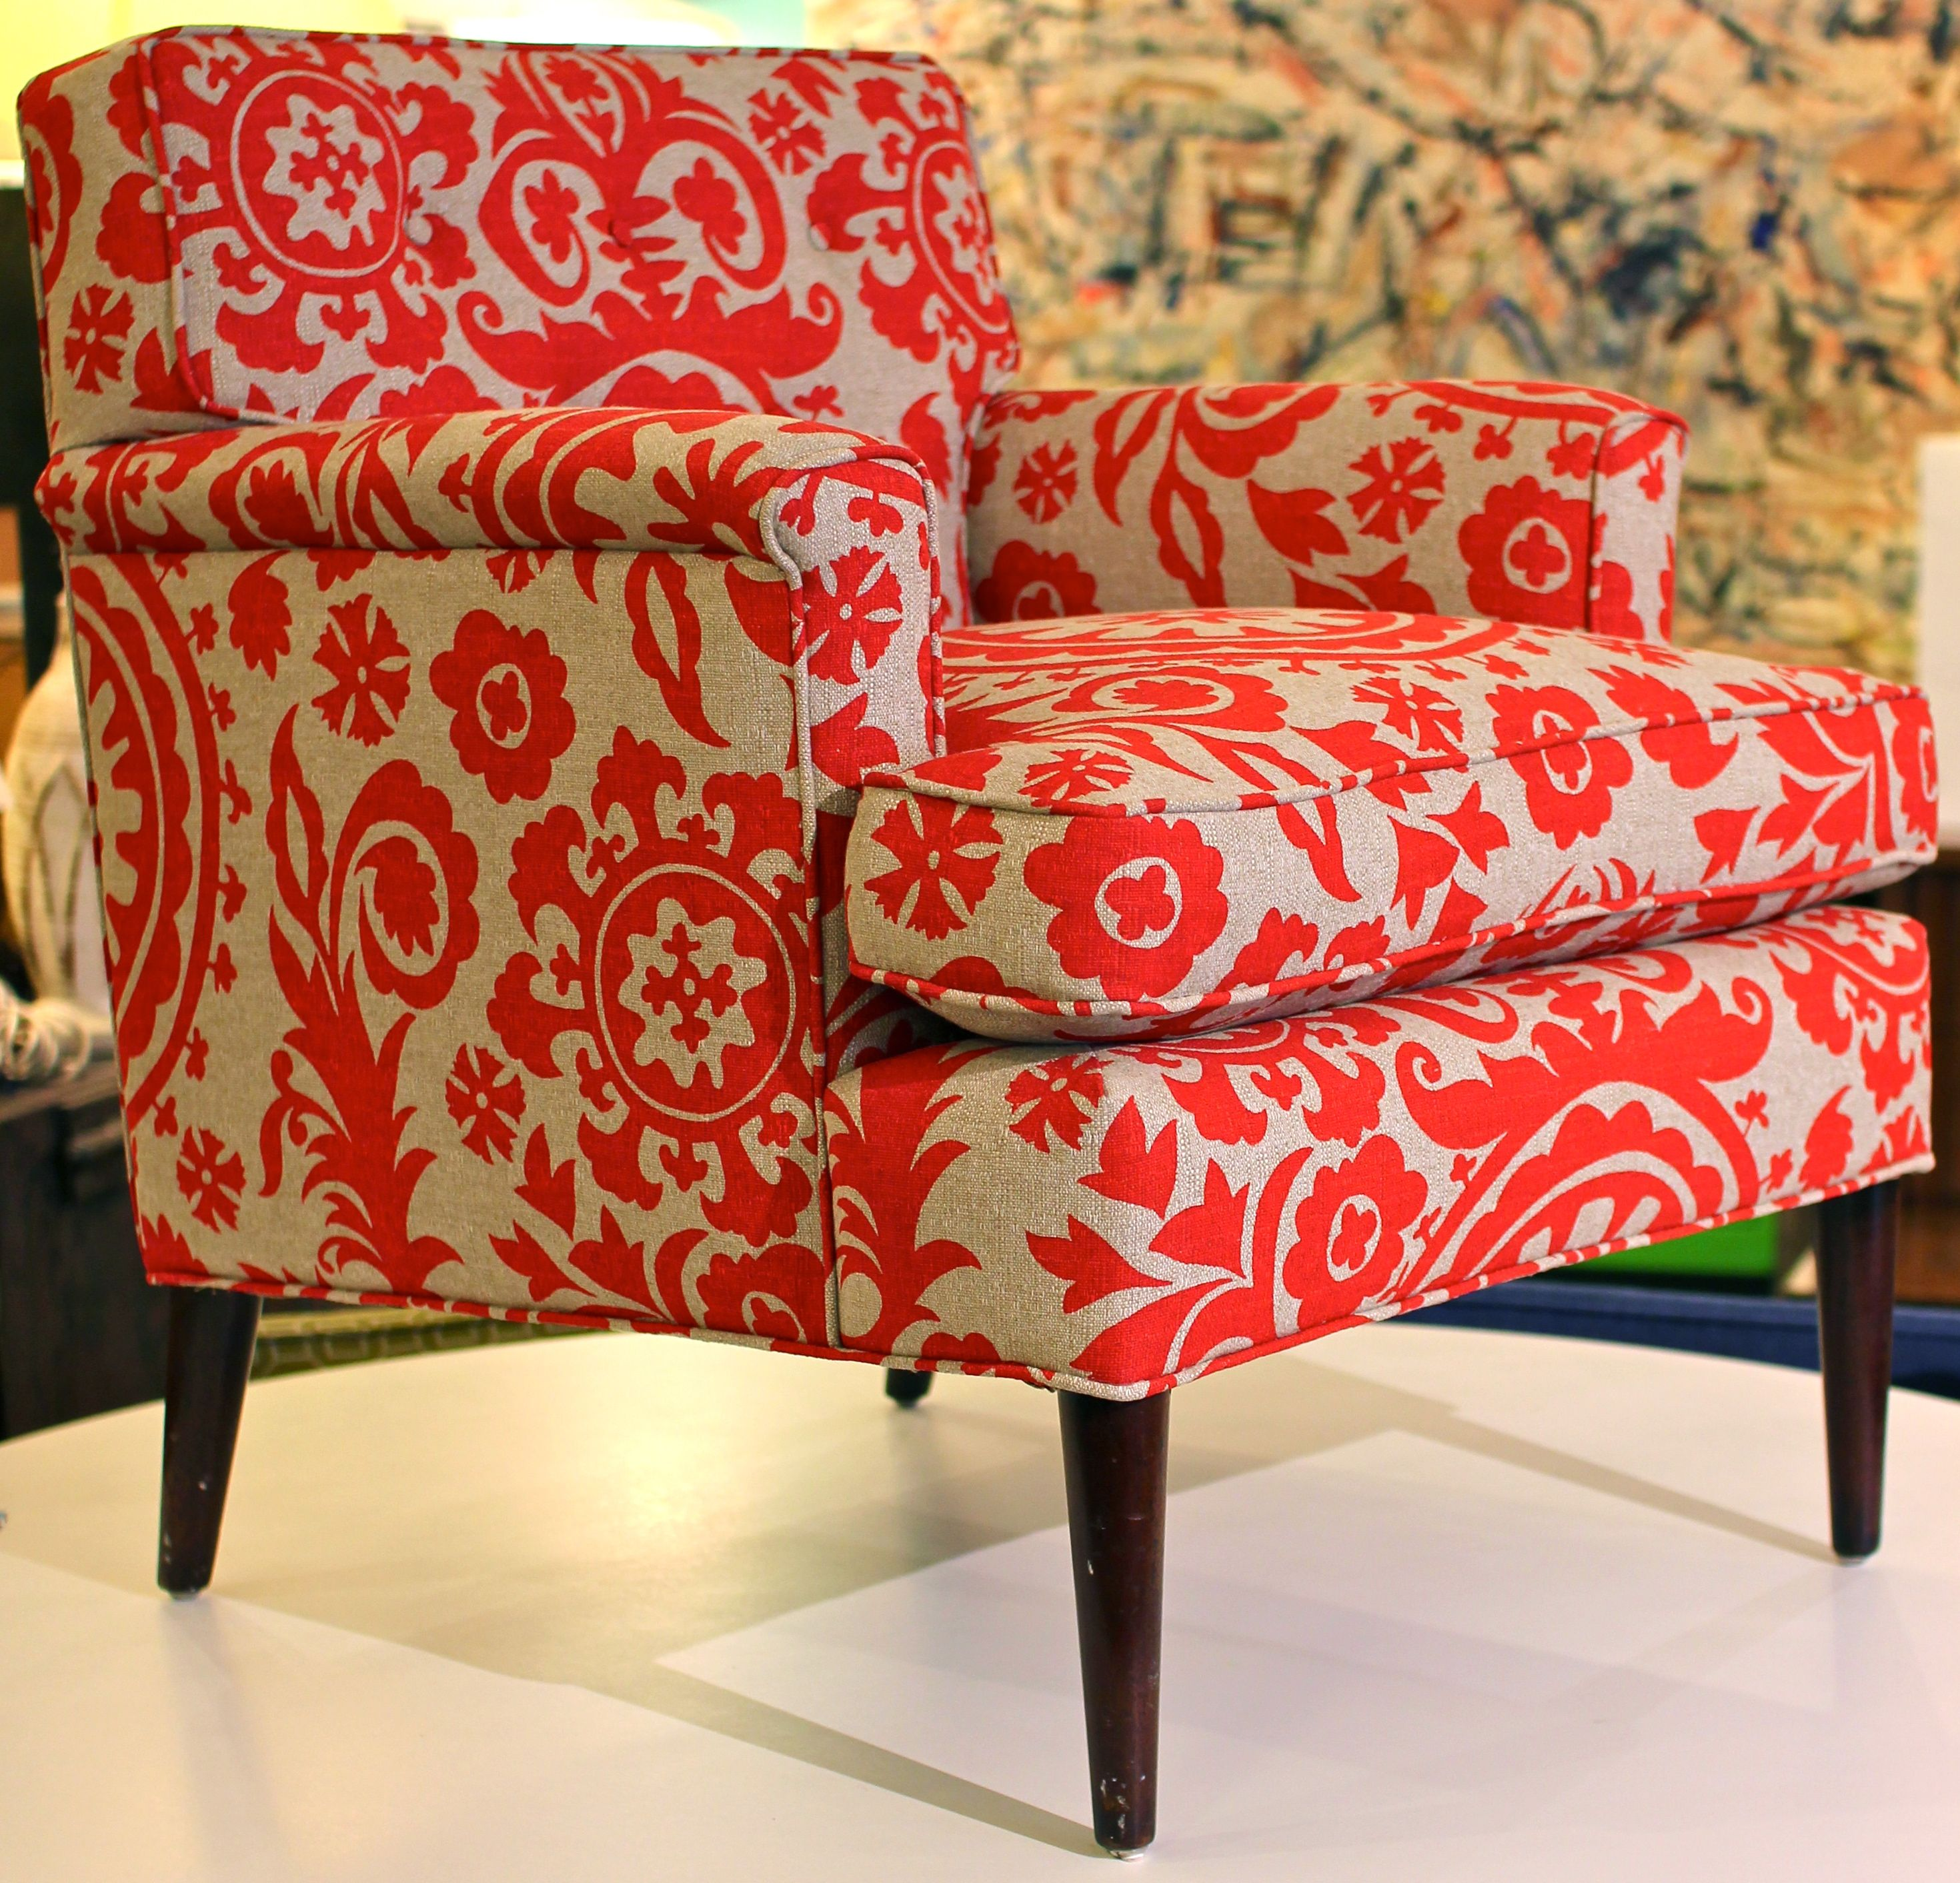 Modern Furniture Houston patterned chairs | red floral patterned chair, mid century modern